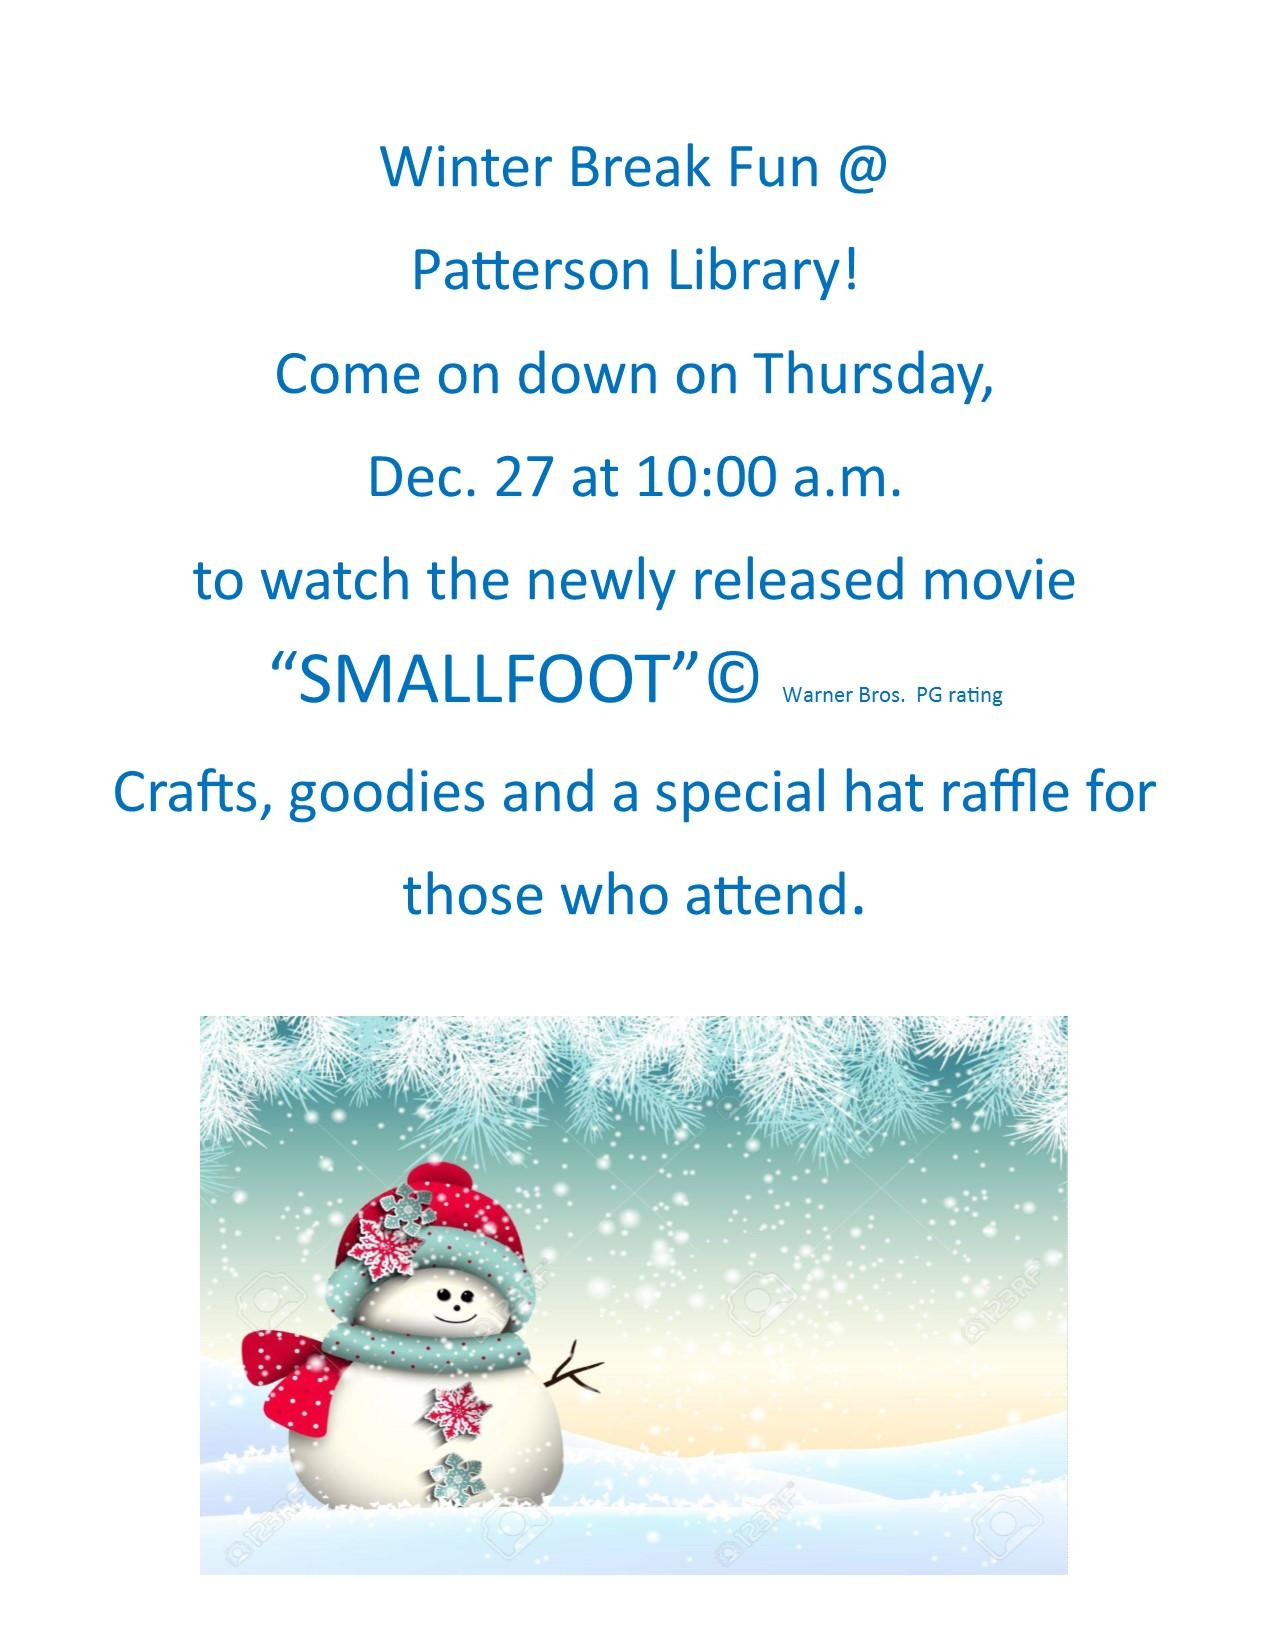 Patterson Library's Winter Break Fun!